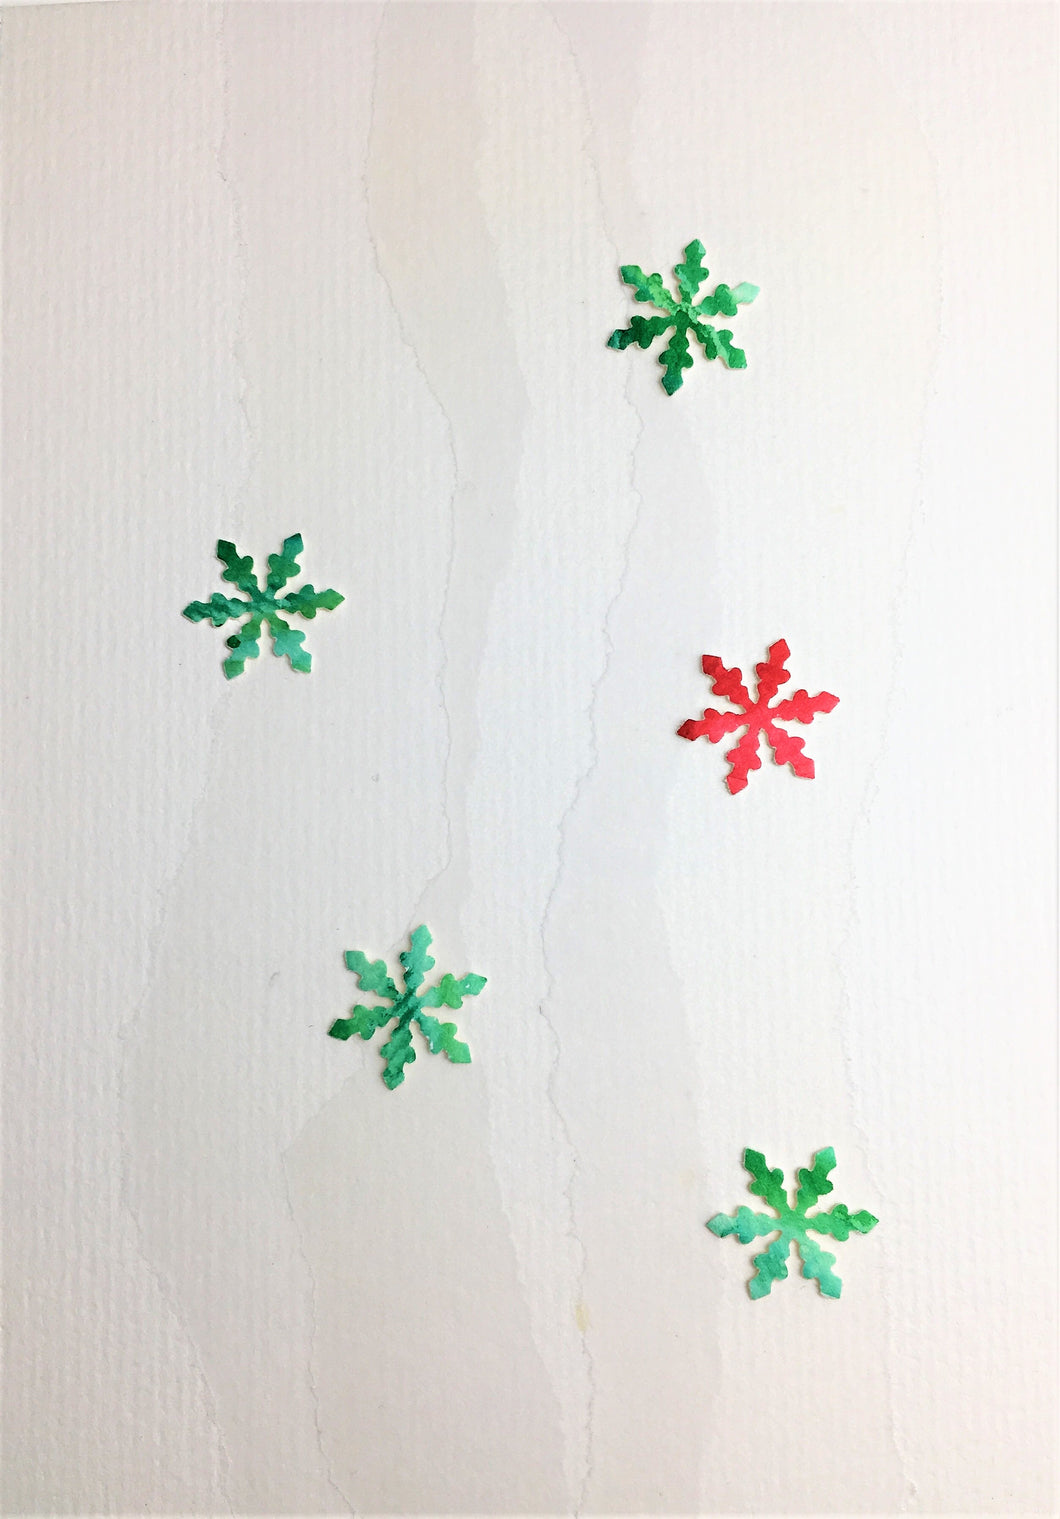 Original Hand Painted Christmas Card - Snowflake Collection - Green and Red - eDgE dEsiGn London